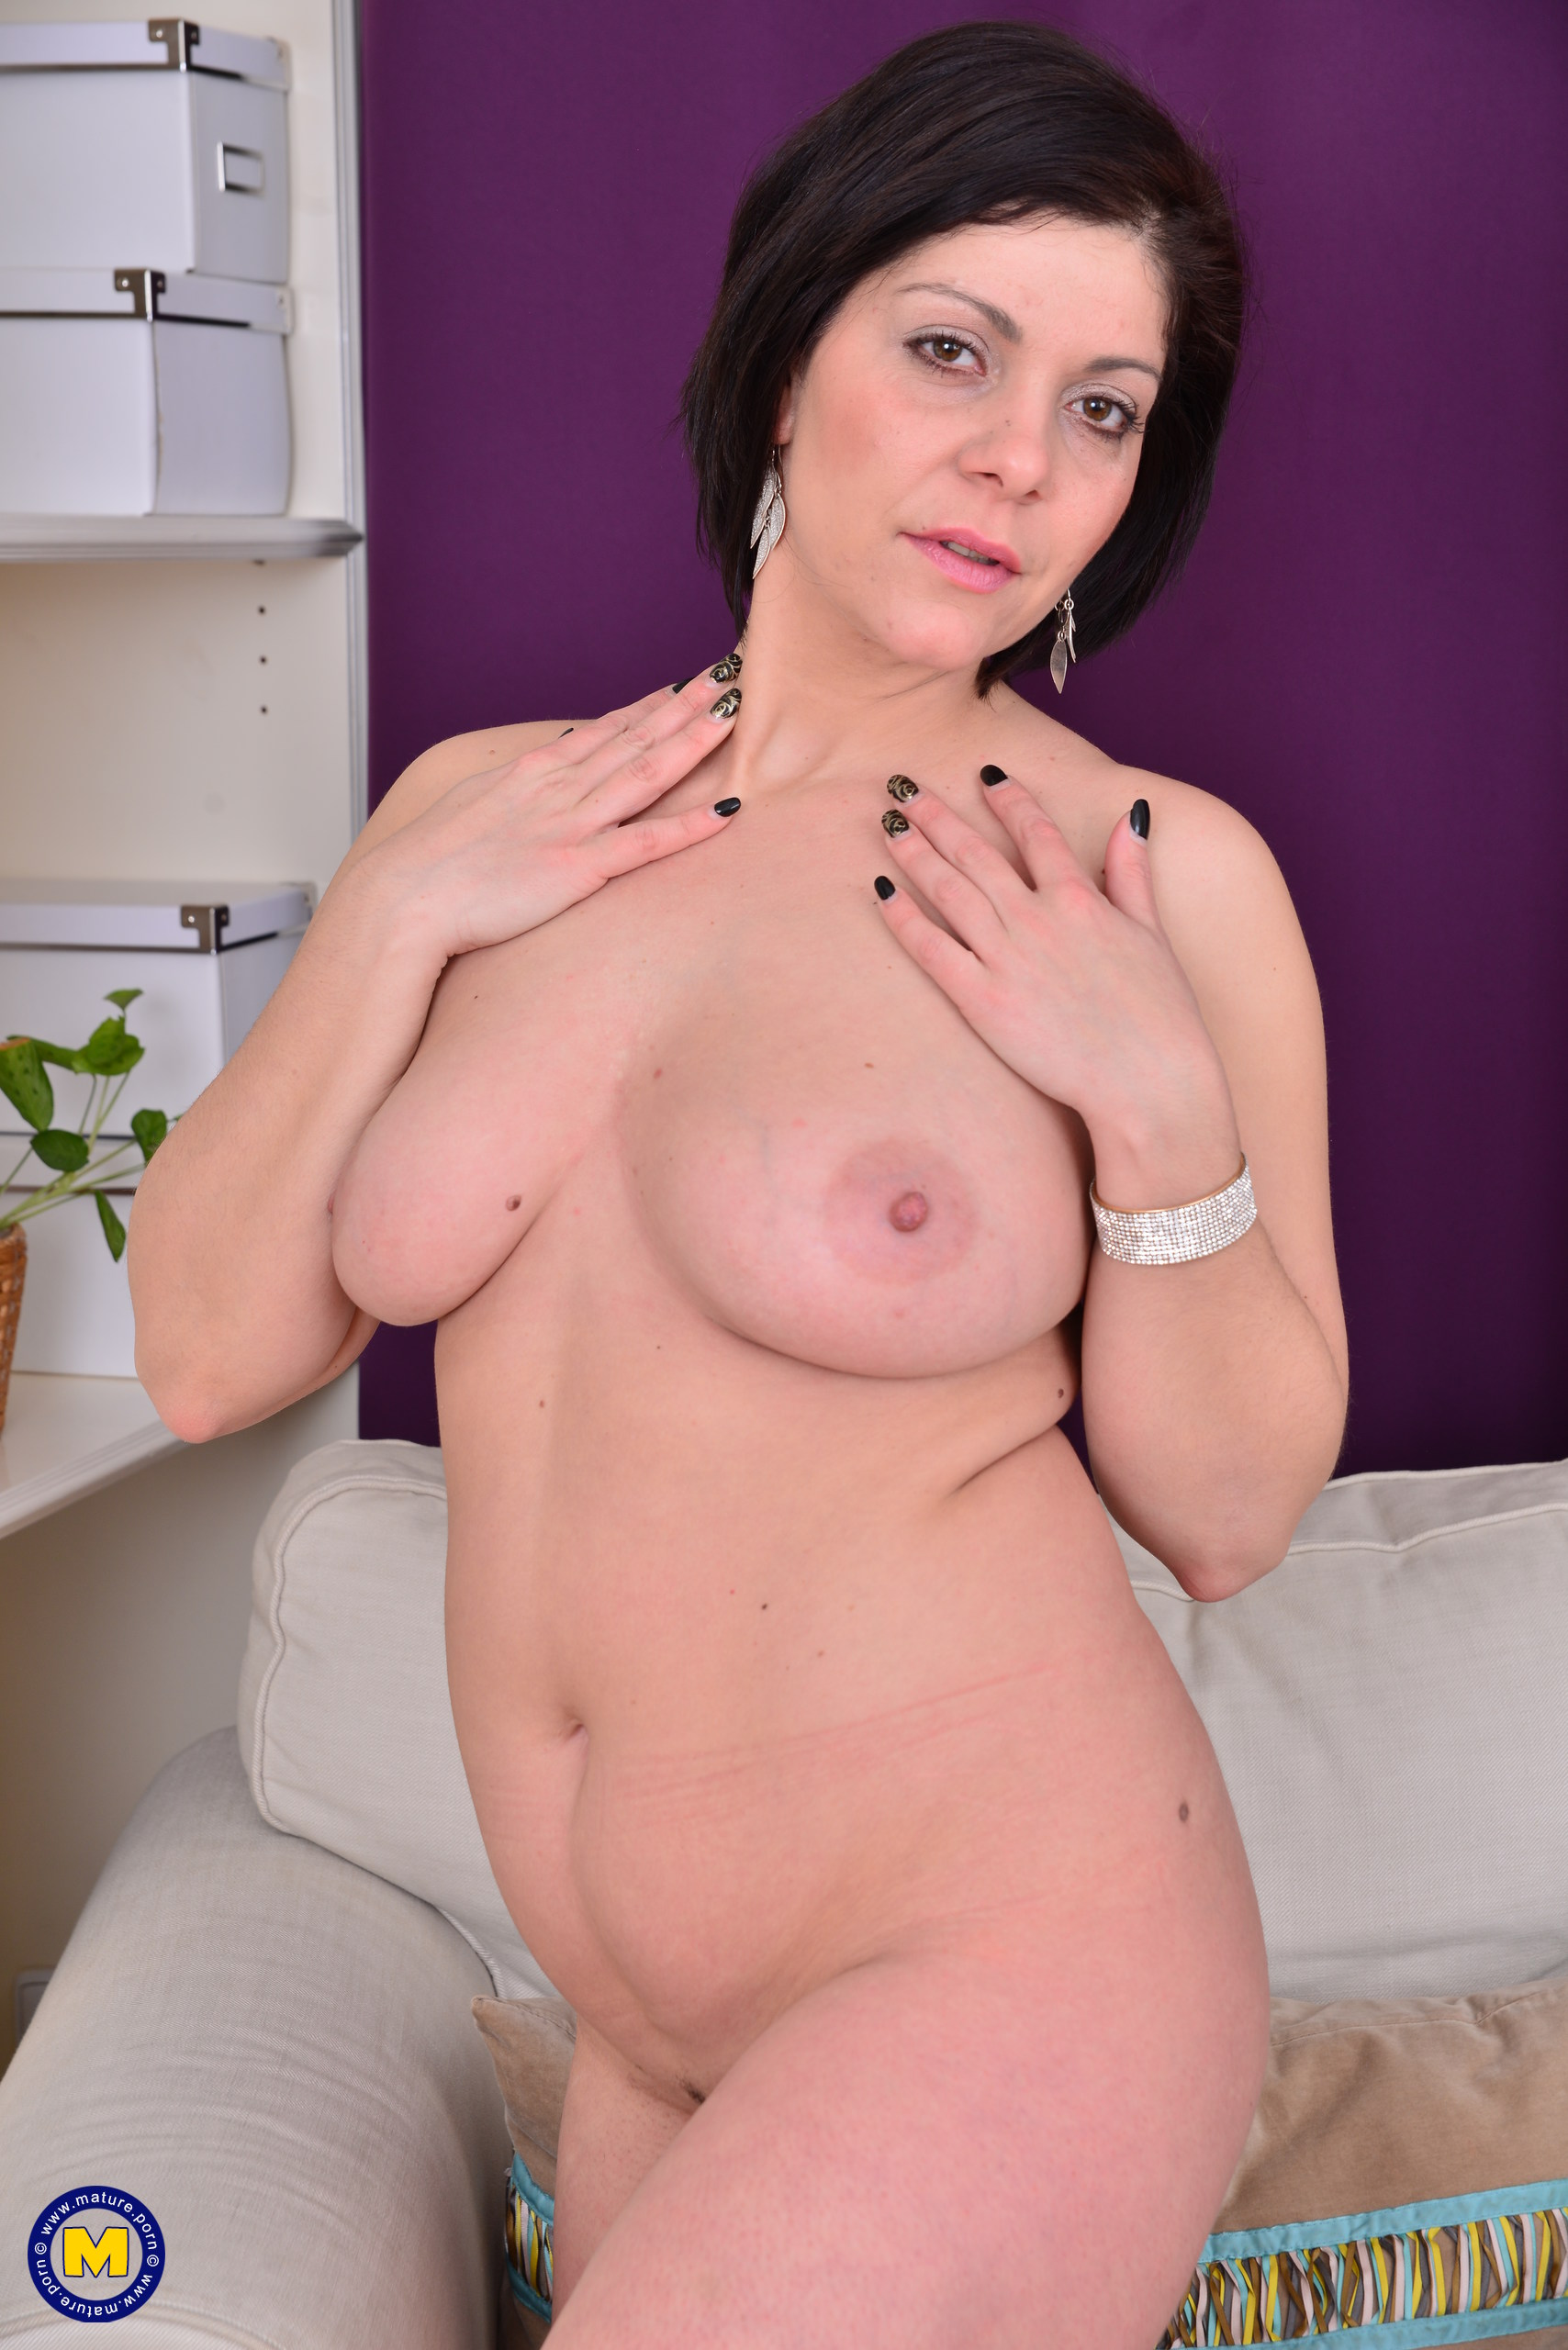 Cute Housewife Nicol Playing With Herself At Mature.nl